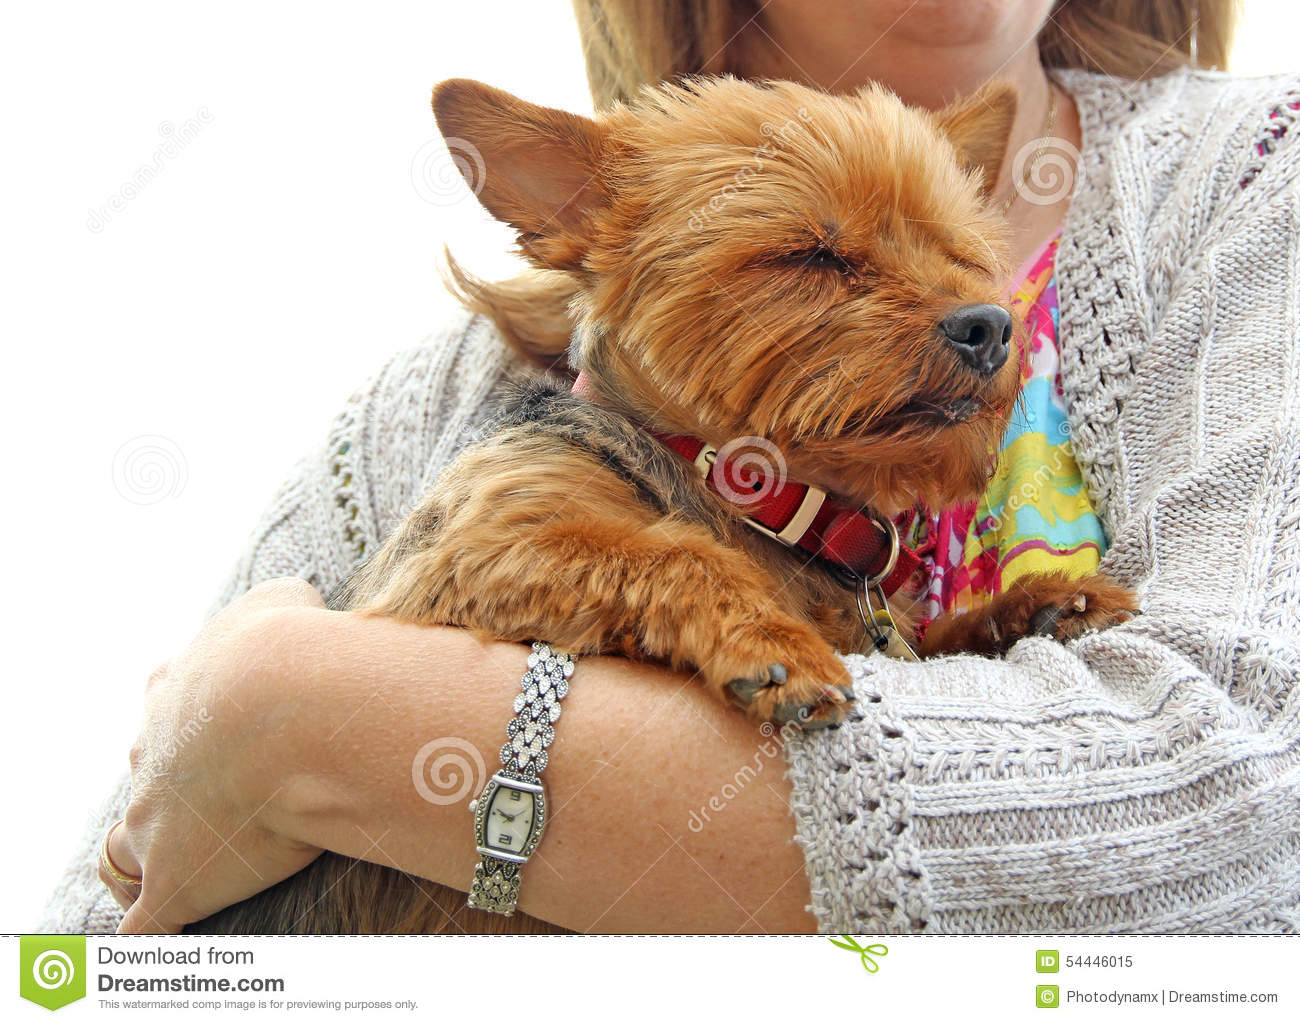 puppy-protection-photo-yorkshire-terrier-feeling-safe-protected-arms-owner-photo-taken-nd-may-54446015